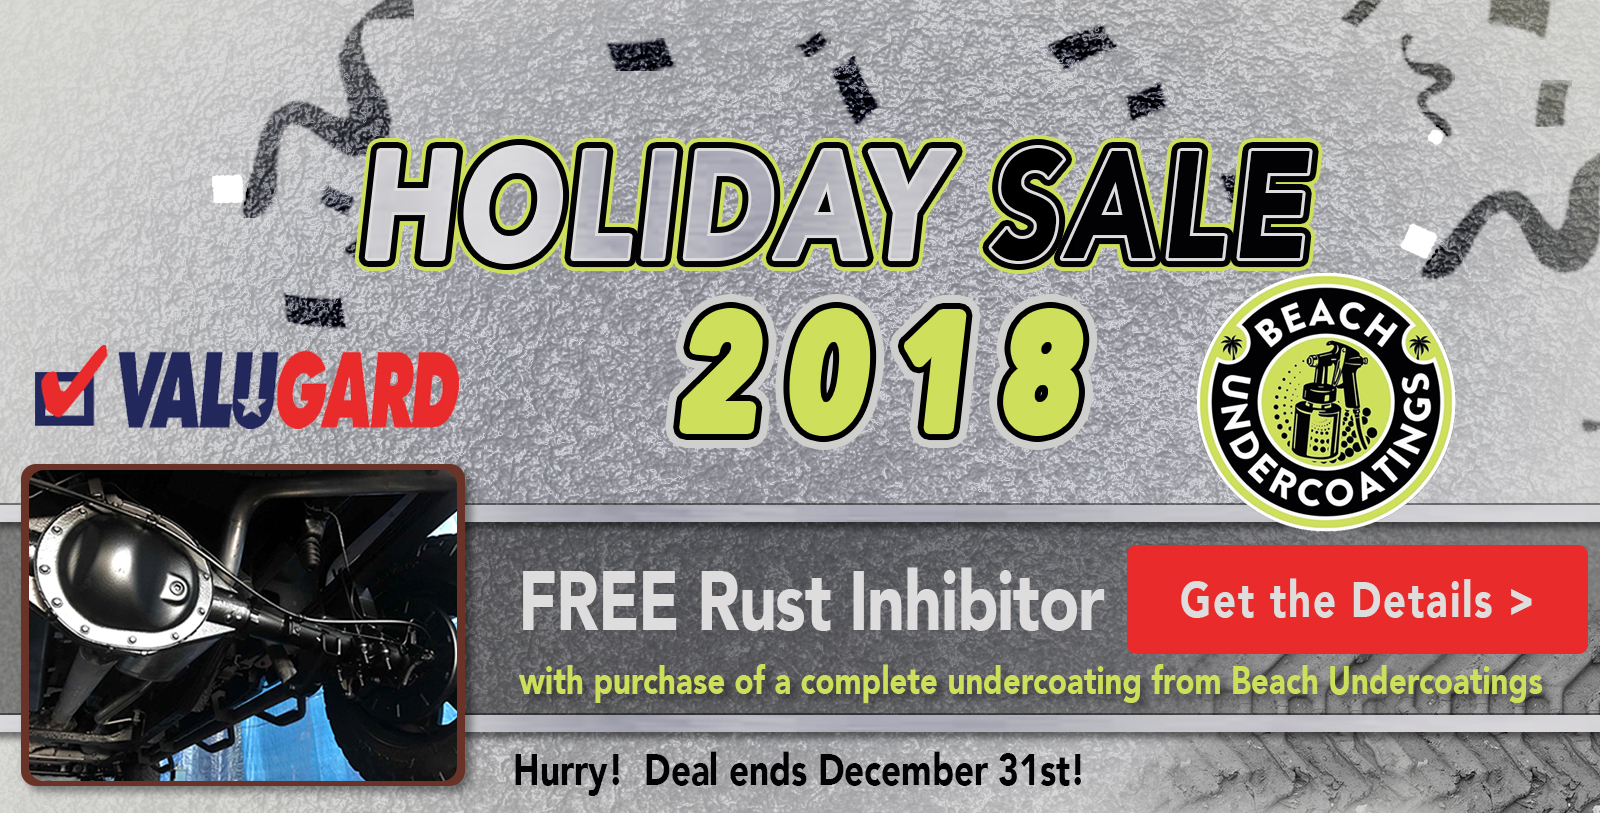 Holiday 2018 Deal: FREE Rust Inhibitor with purchase of a complete